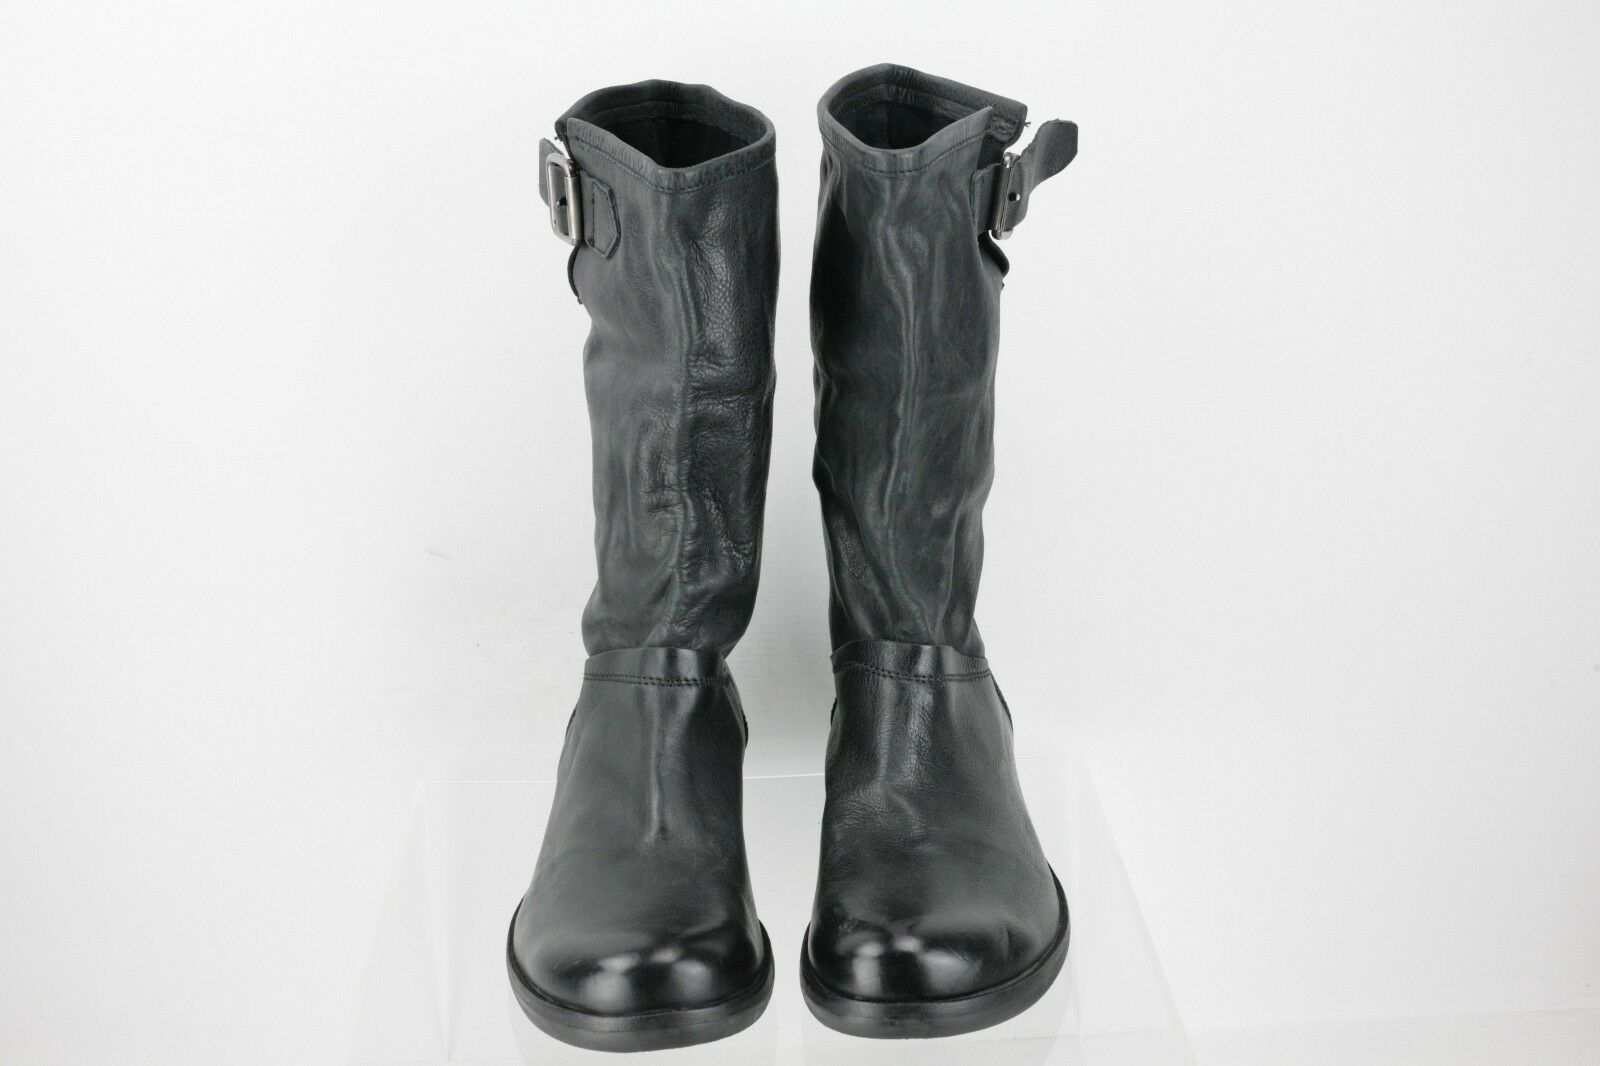 KBR Black Black Black Leather Mid-Calf Boots Women's shoes Size 40 US 10 M NEW 2d98eb